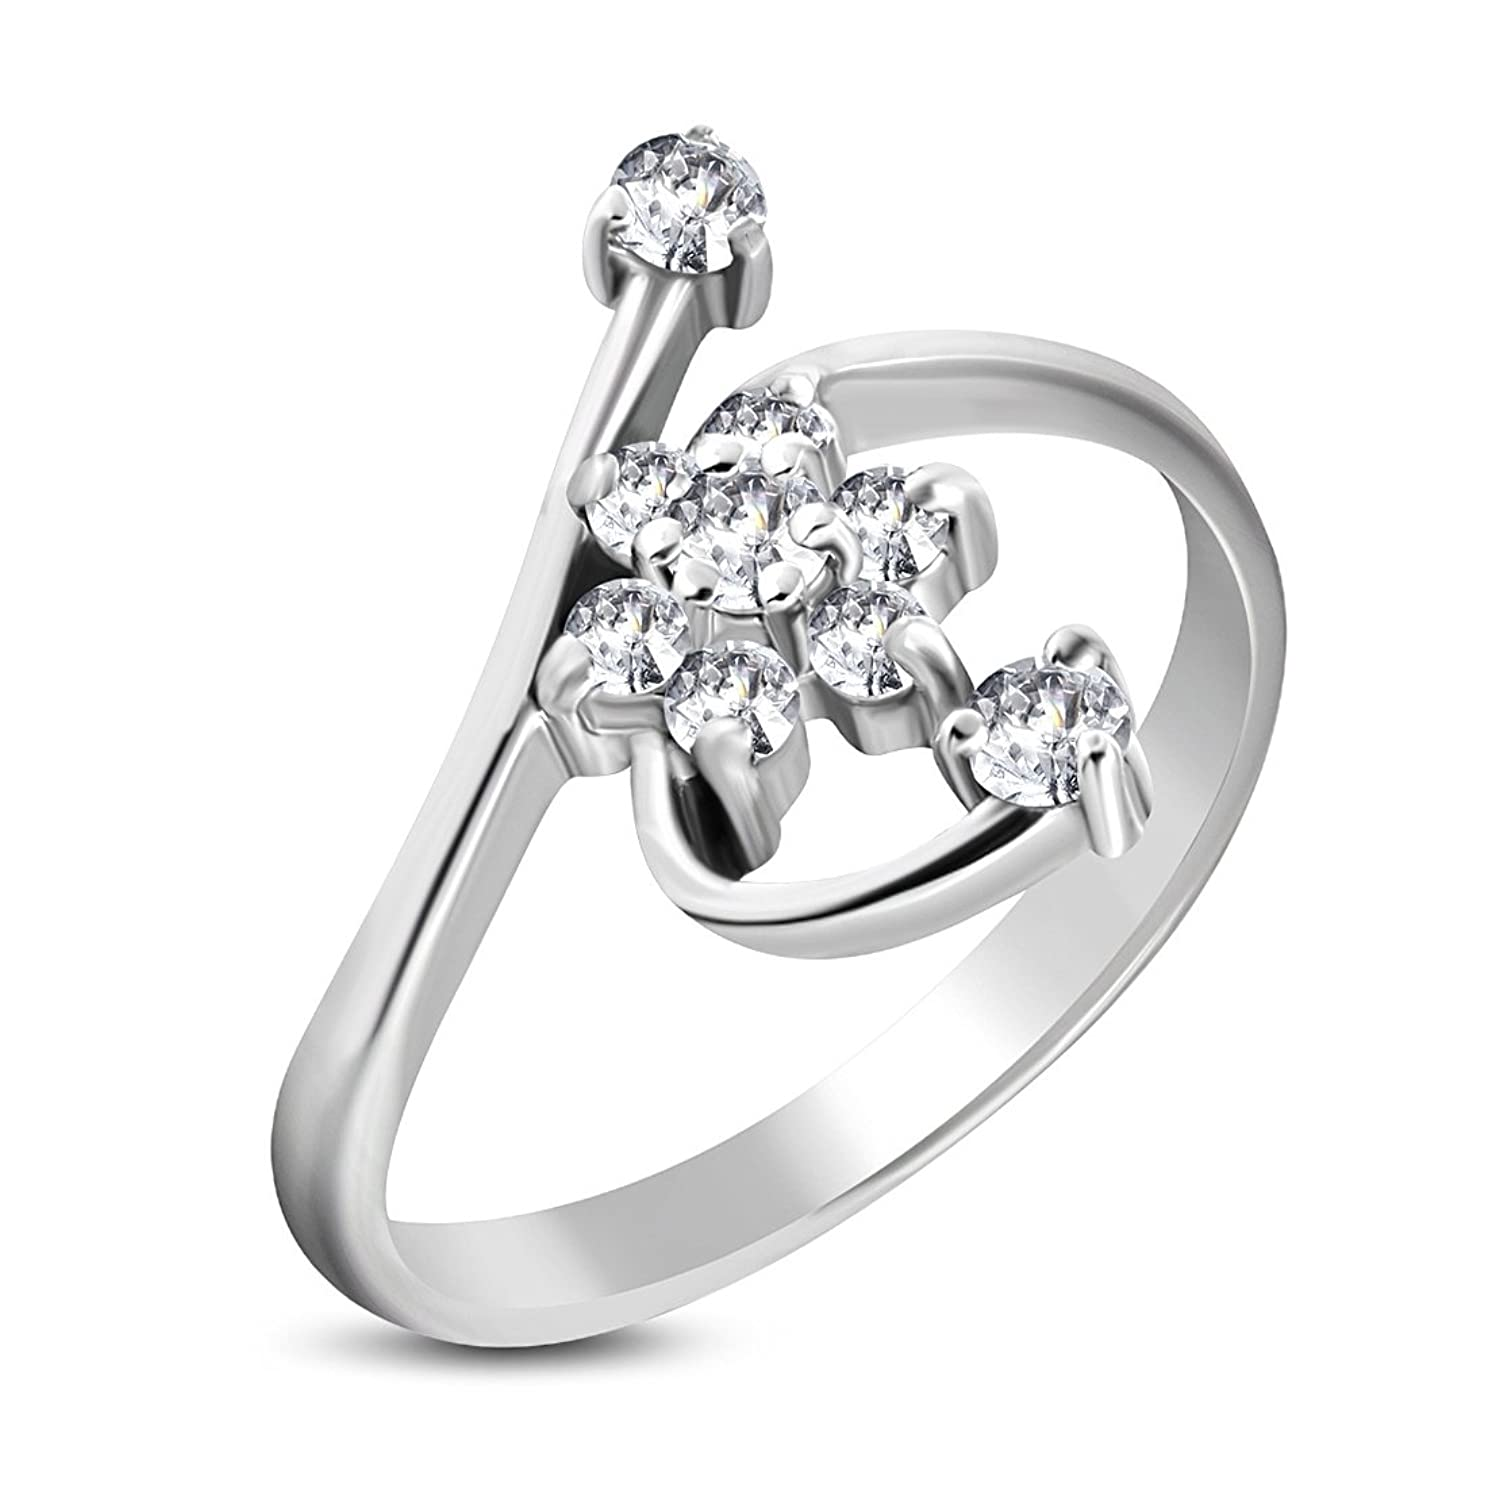 NRG Rings Stainless Steel Gold Color Plated Prong-Set Round Sirena Bypass Fancy Ring with Clear CZ